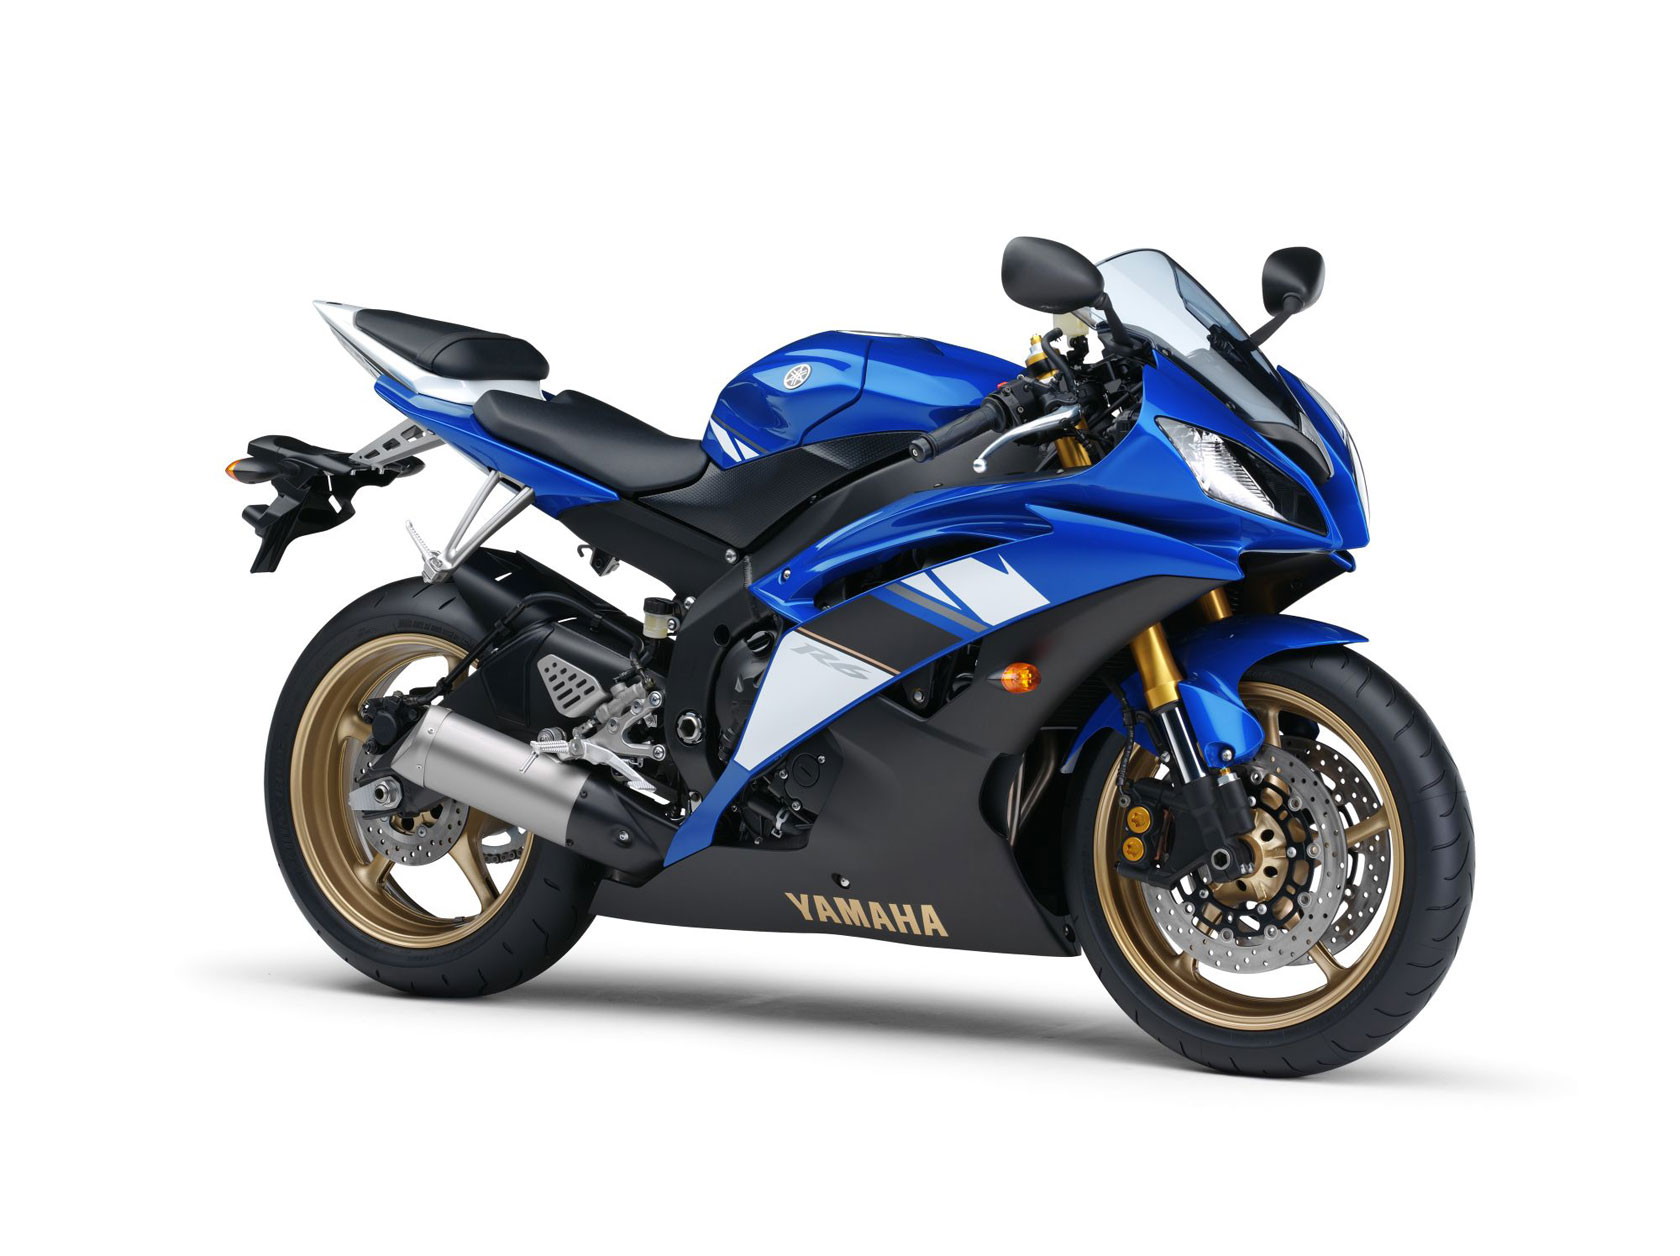 Page 7 - 2008 to 2009 - Yamaha R6/YZF-R6: Significant refinements